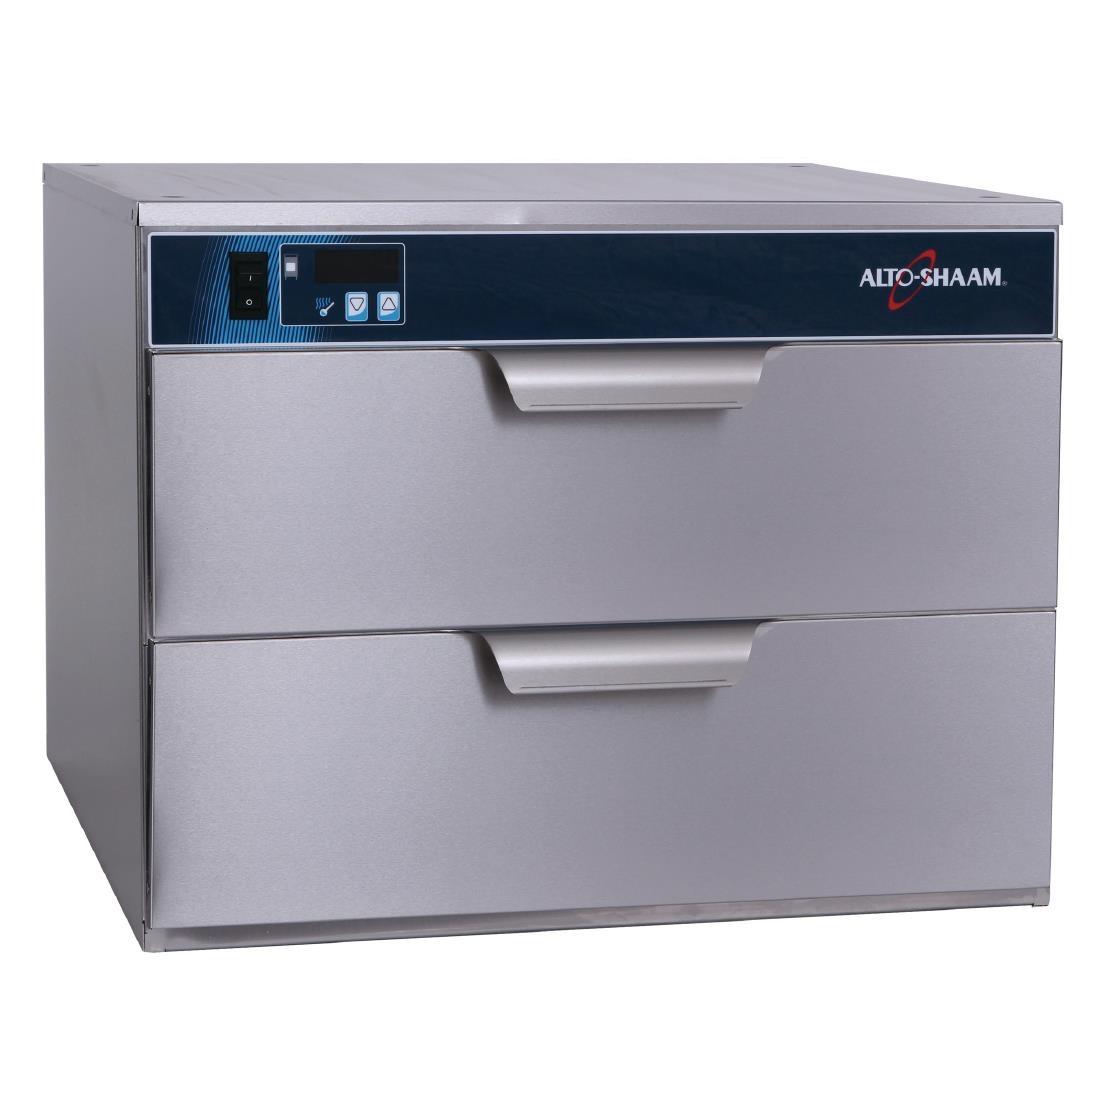 Image of Alto-Shaam Halo Heat Drawer Warmers 500-2D